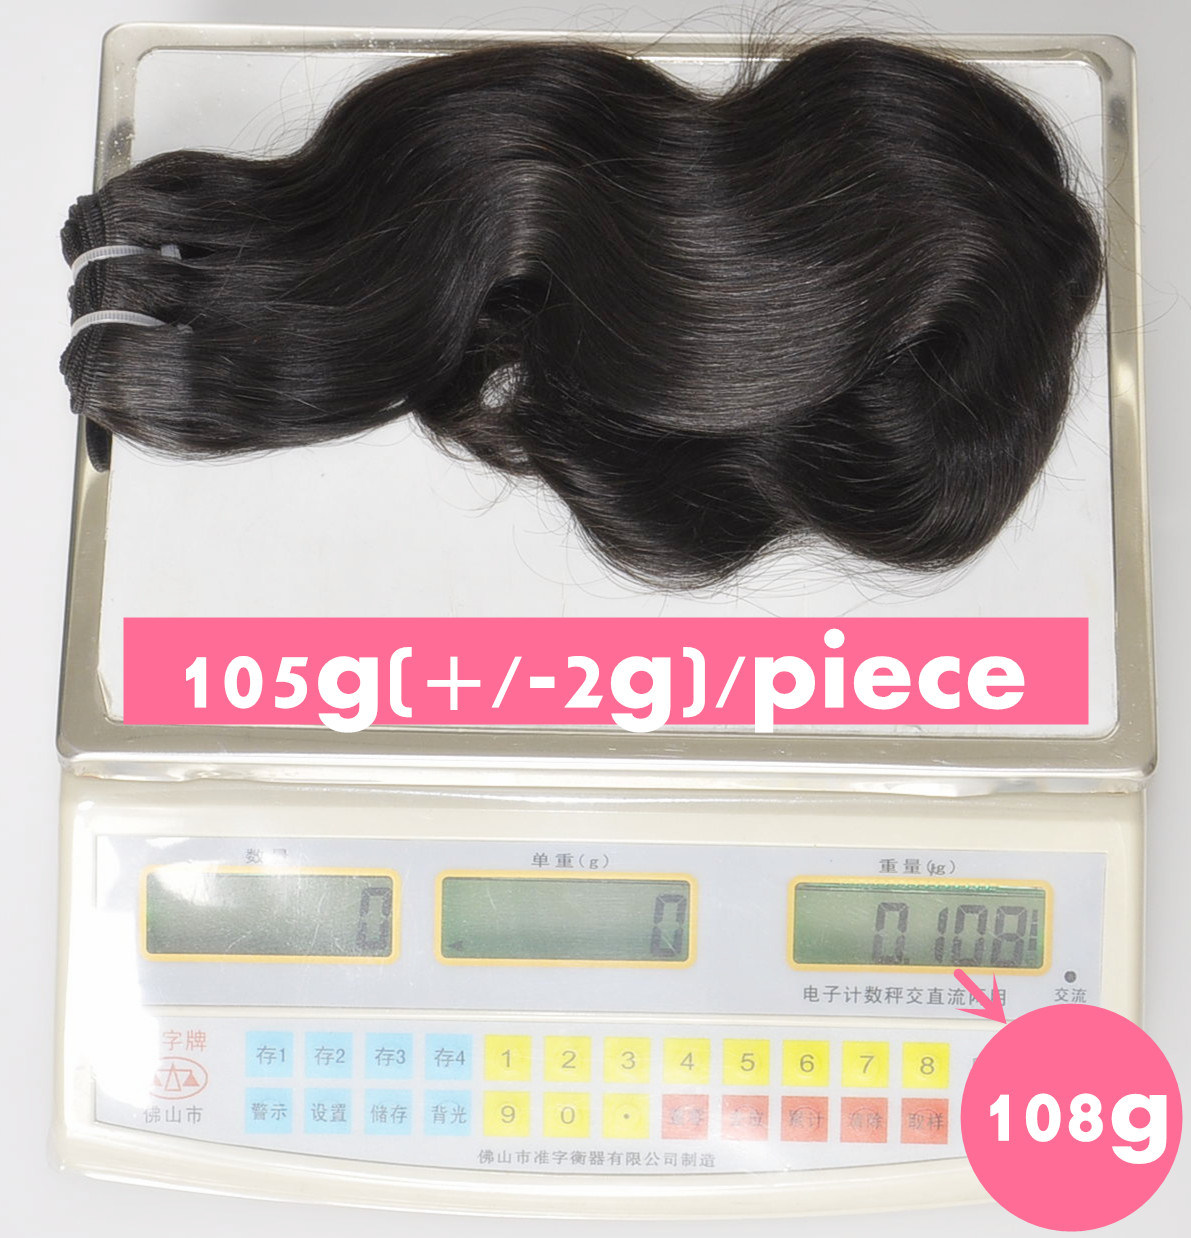 Unprocessed Labor Hair Extension 105g (+/-2g) /Bundle Natural Brazilian Virgin Hair Body Wave 100% Human Hair Weaves Grade 8A